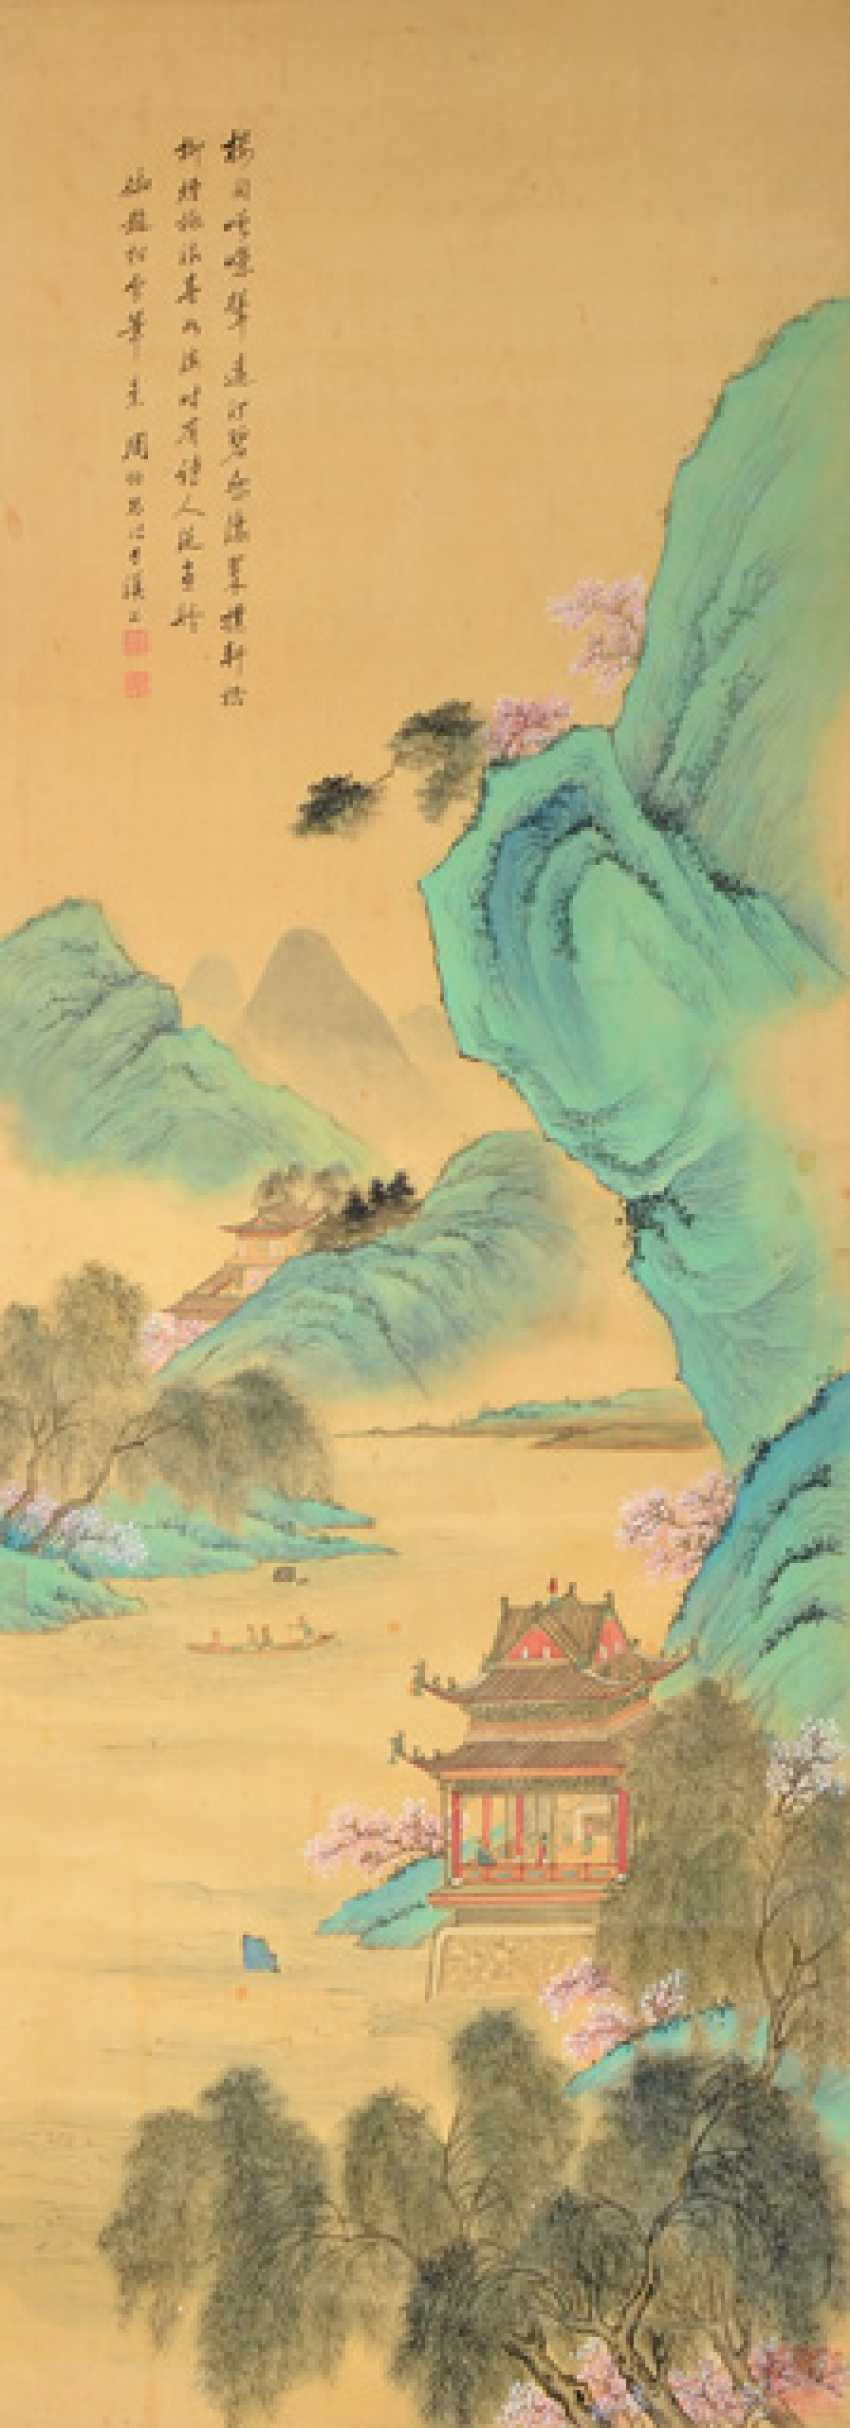 Painting of a rocky river landscape with pavilions - photo 1